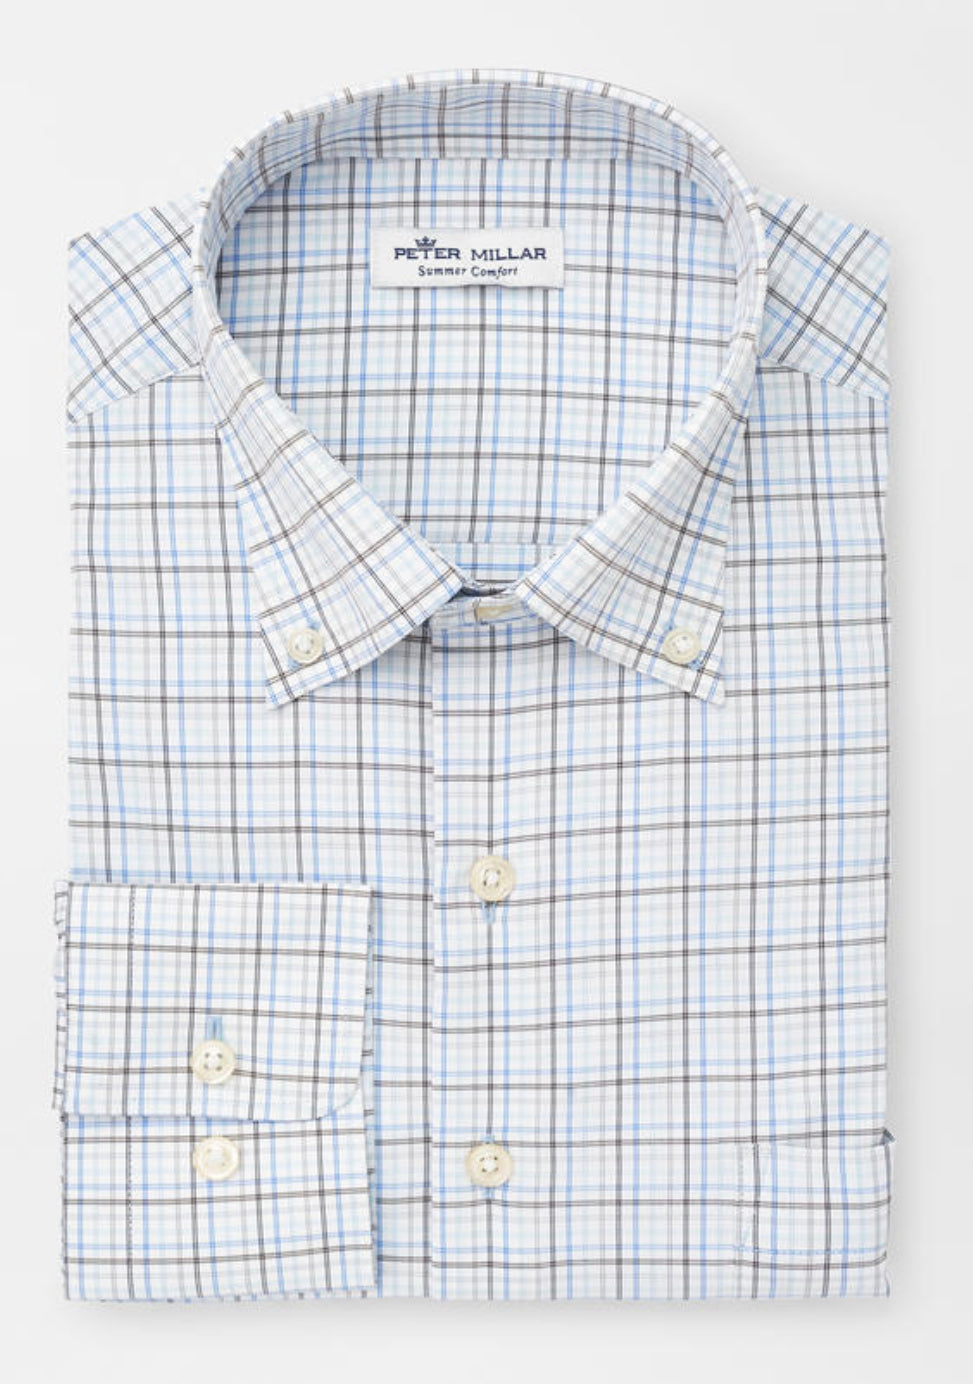 PETER MILLAR FULTON PERFORMANCE SPORT SHIRT